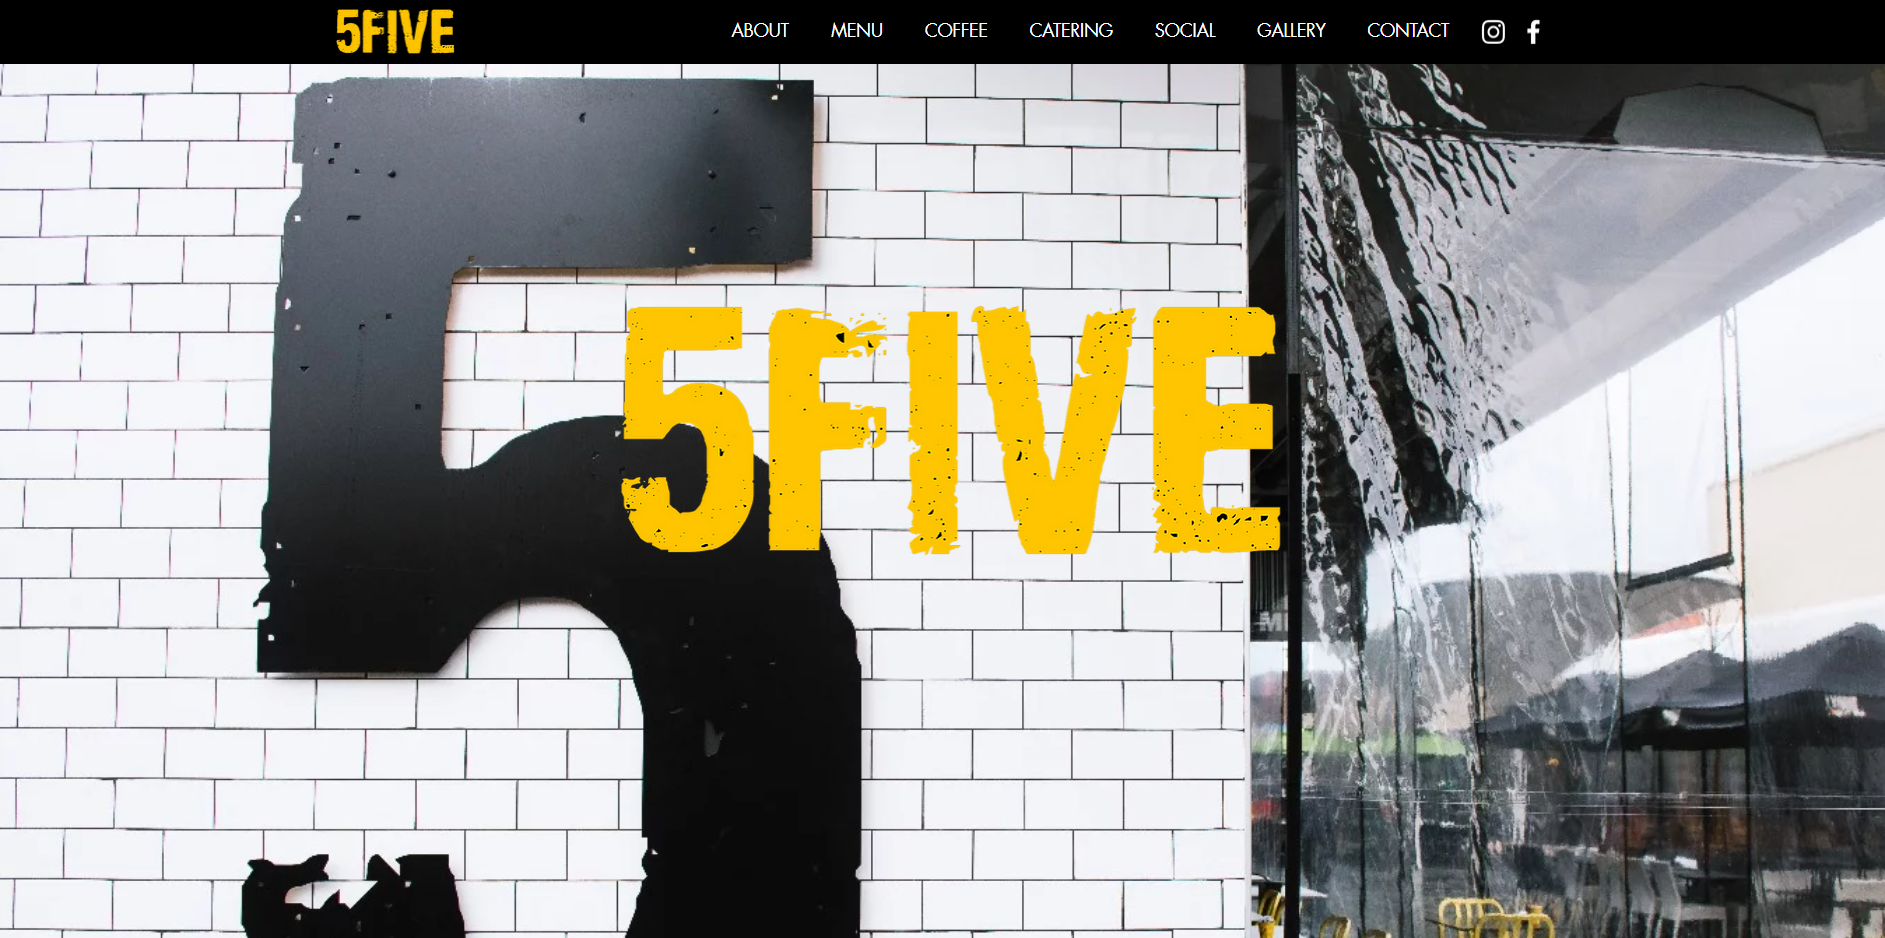 5five Cafe